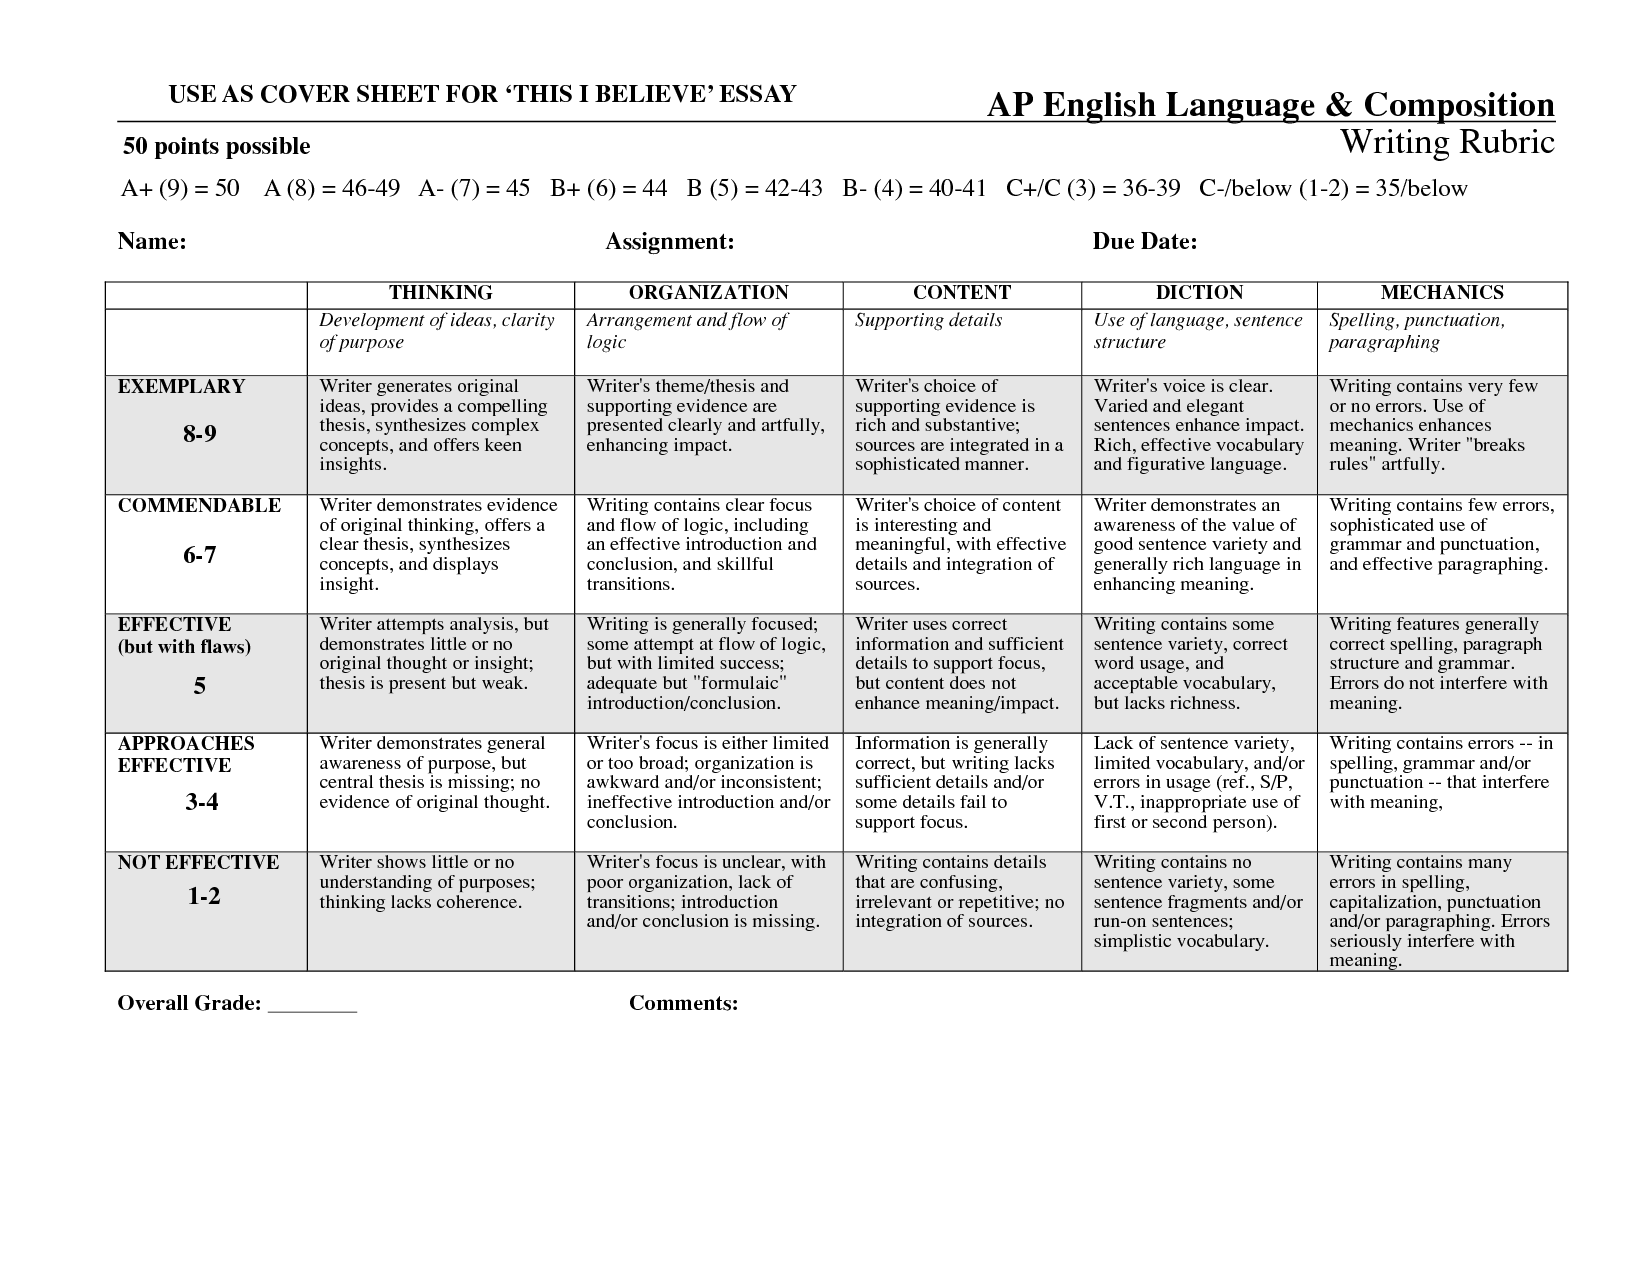 ap english language and composition essay rubric